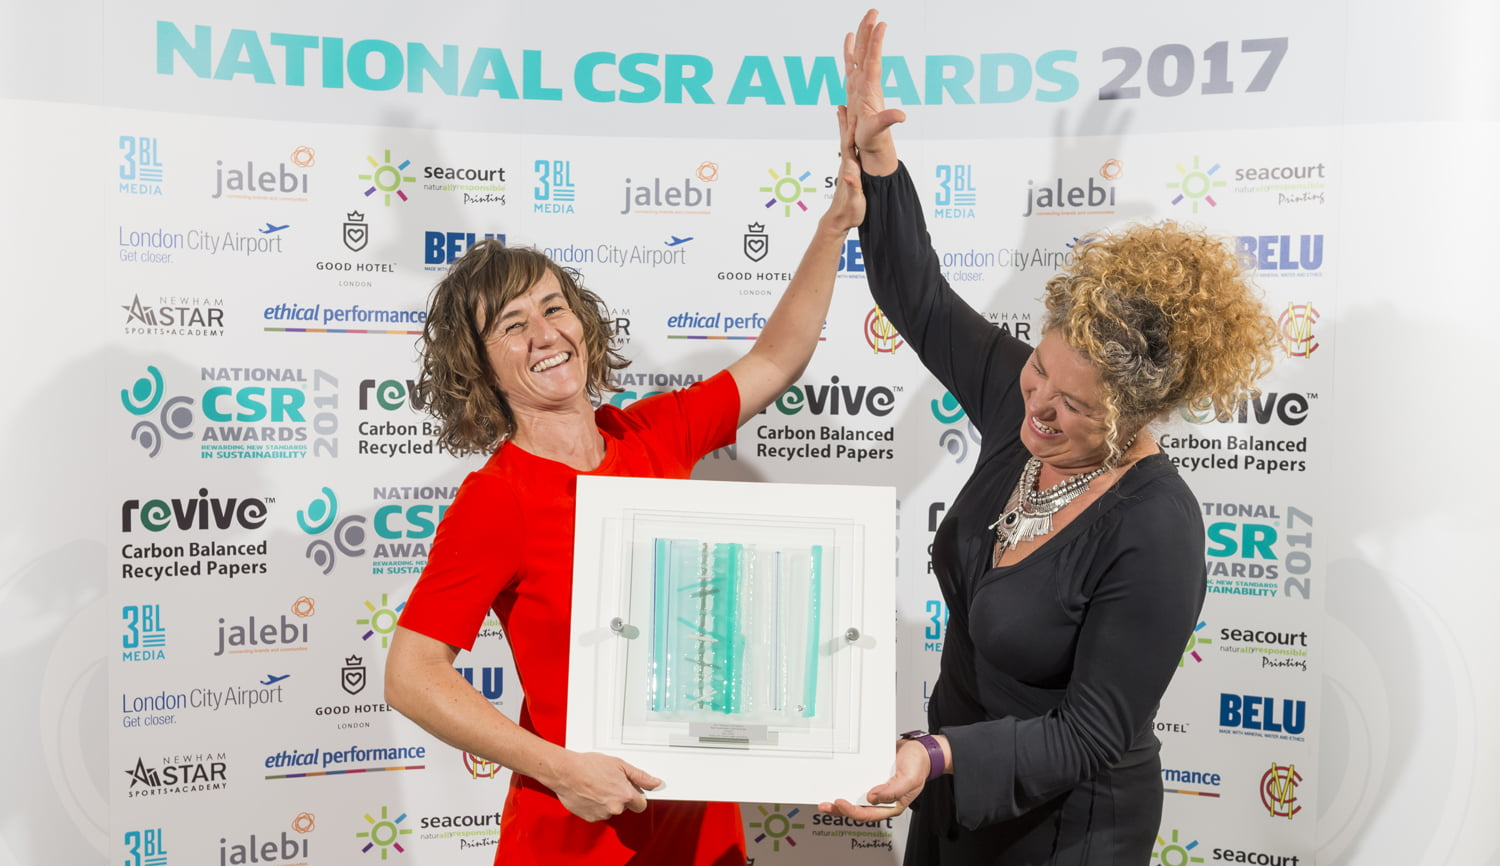 Belu CEO Karen Lynch (right) and Marketing Director Claire Pearson (left) pick up Best Sustainable Small Business in 2017